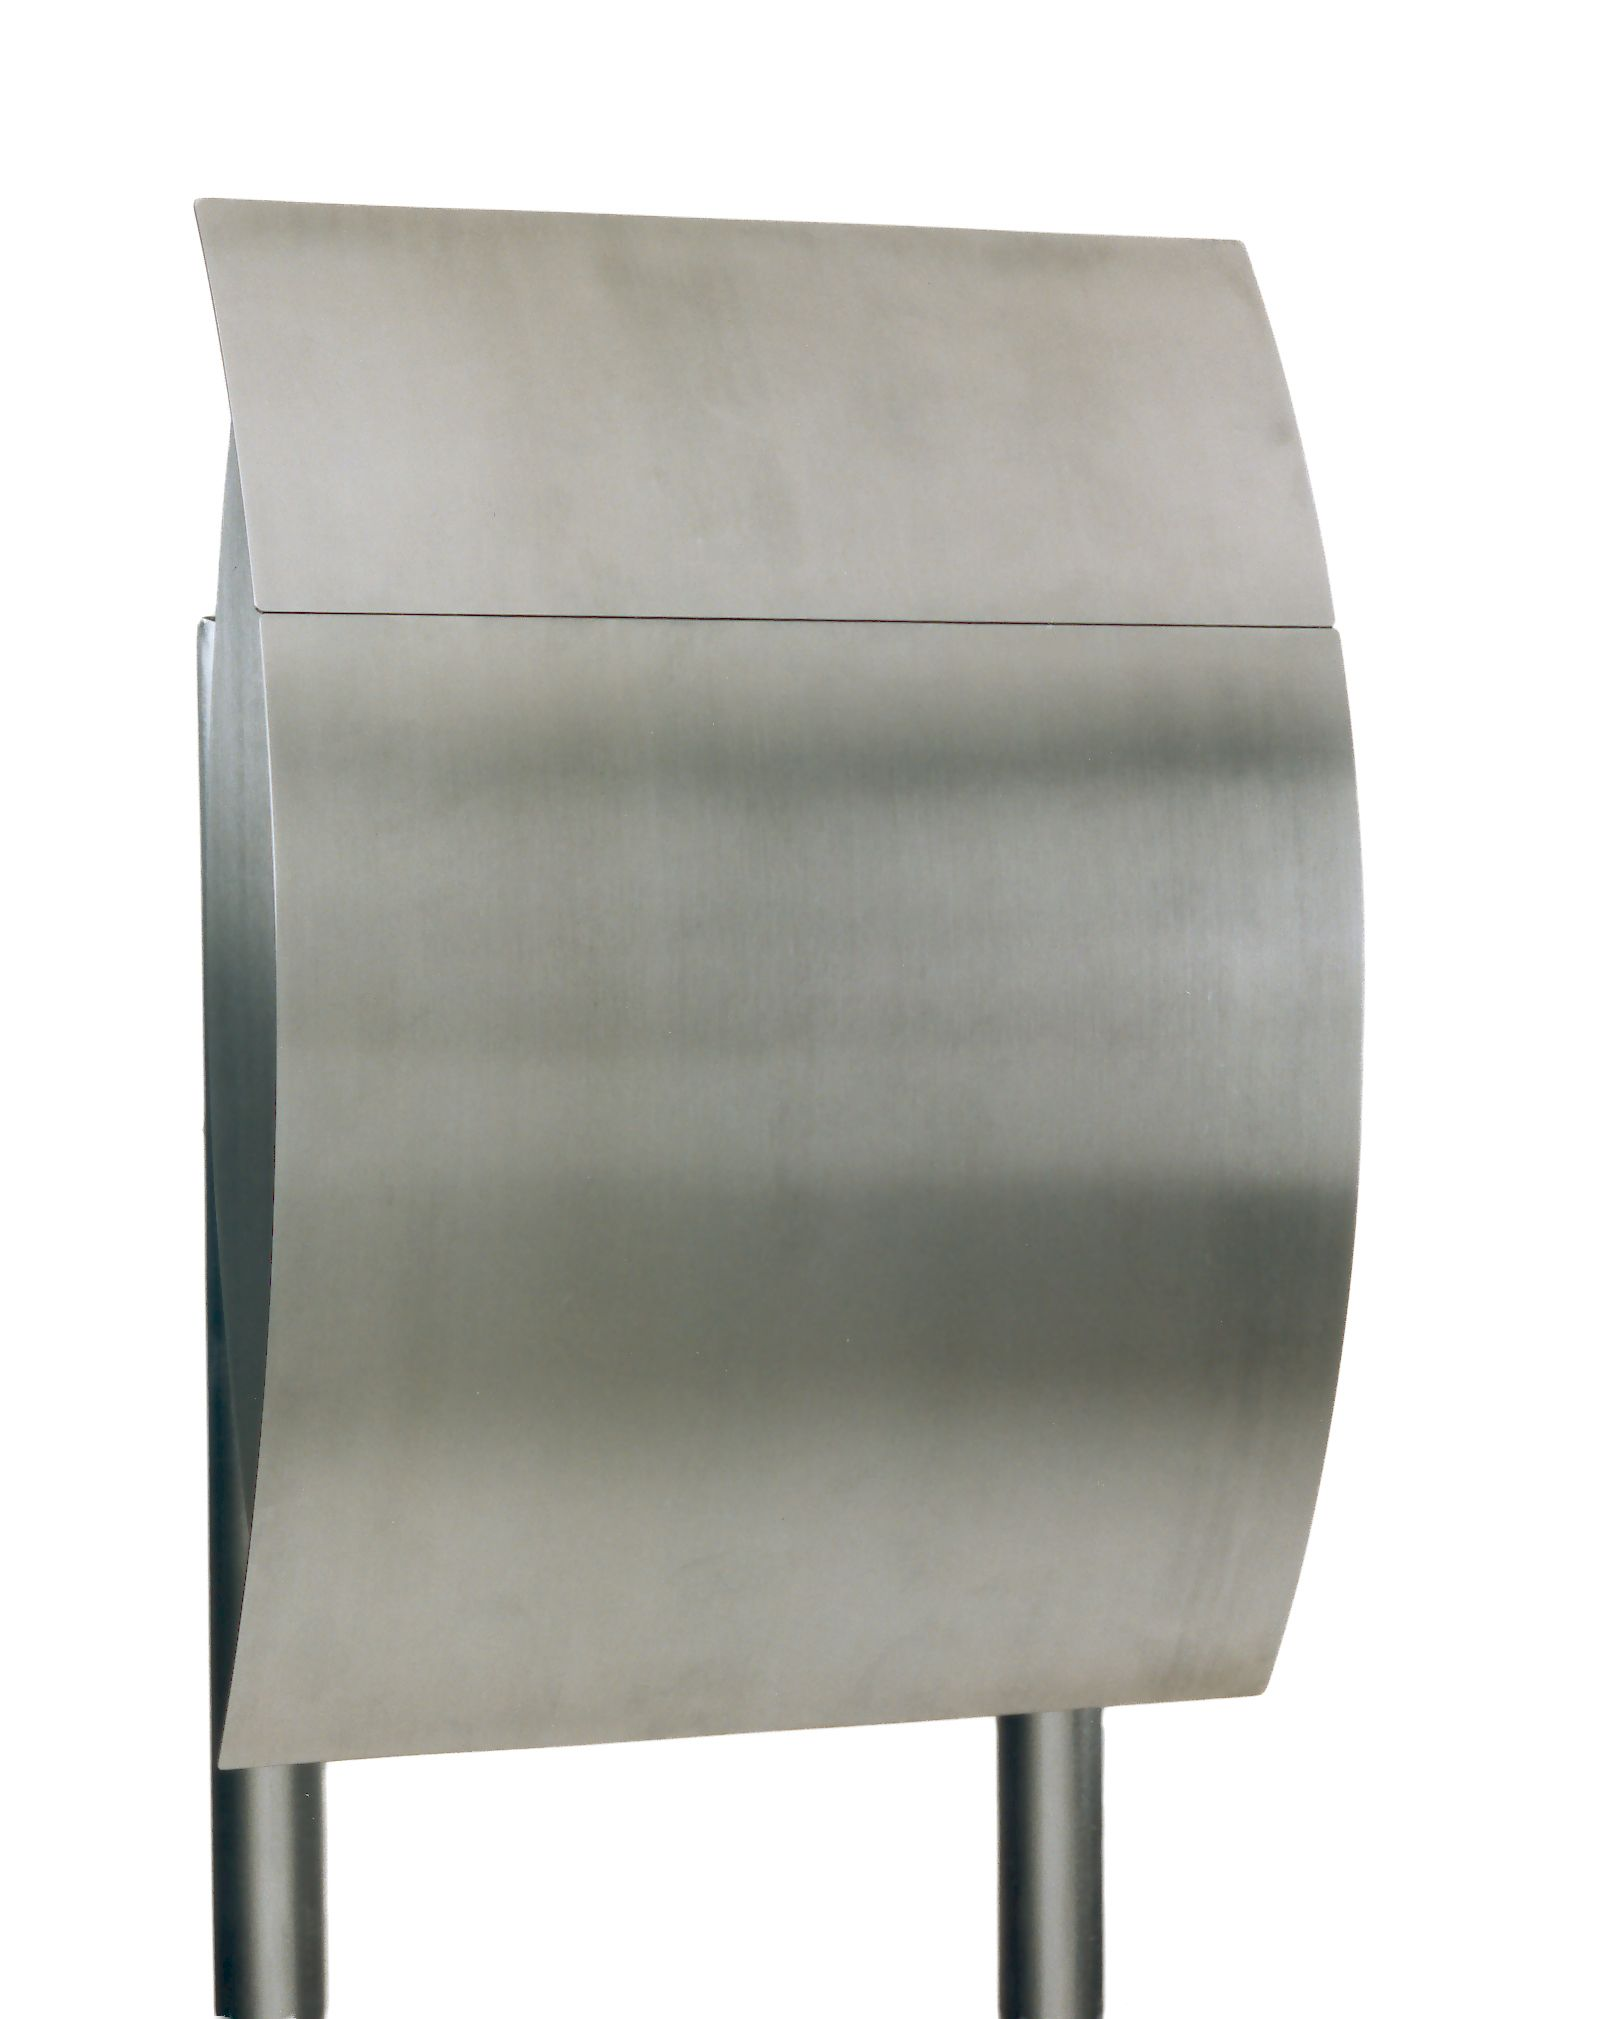 residential mailboxes wall mount. Residential Mailboxes For Sale Wall Mount